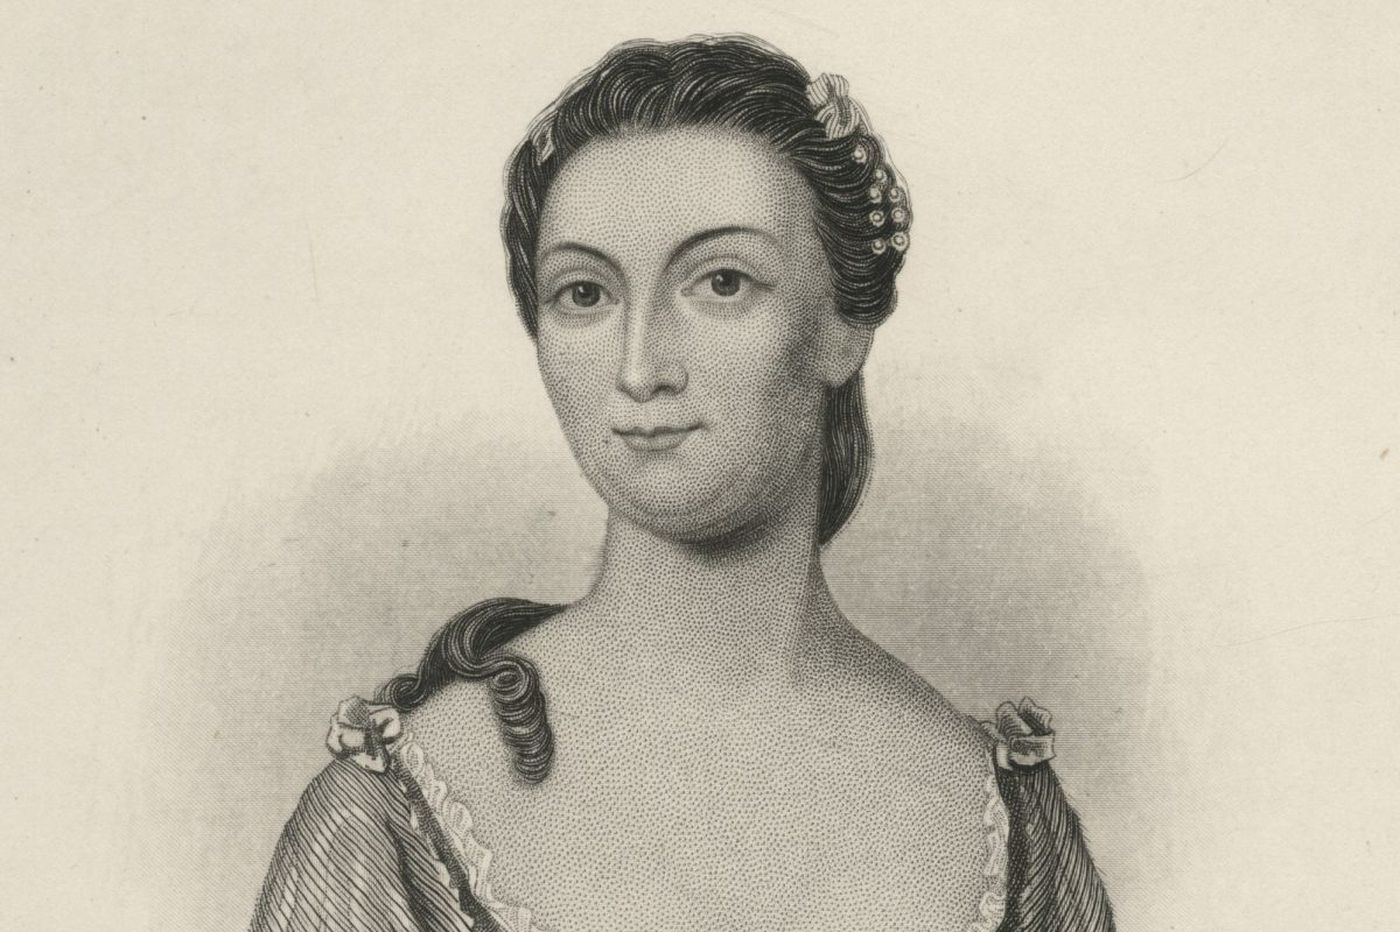 Count women among the Revolutionary War's patriots | Philly History